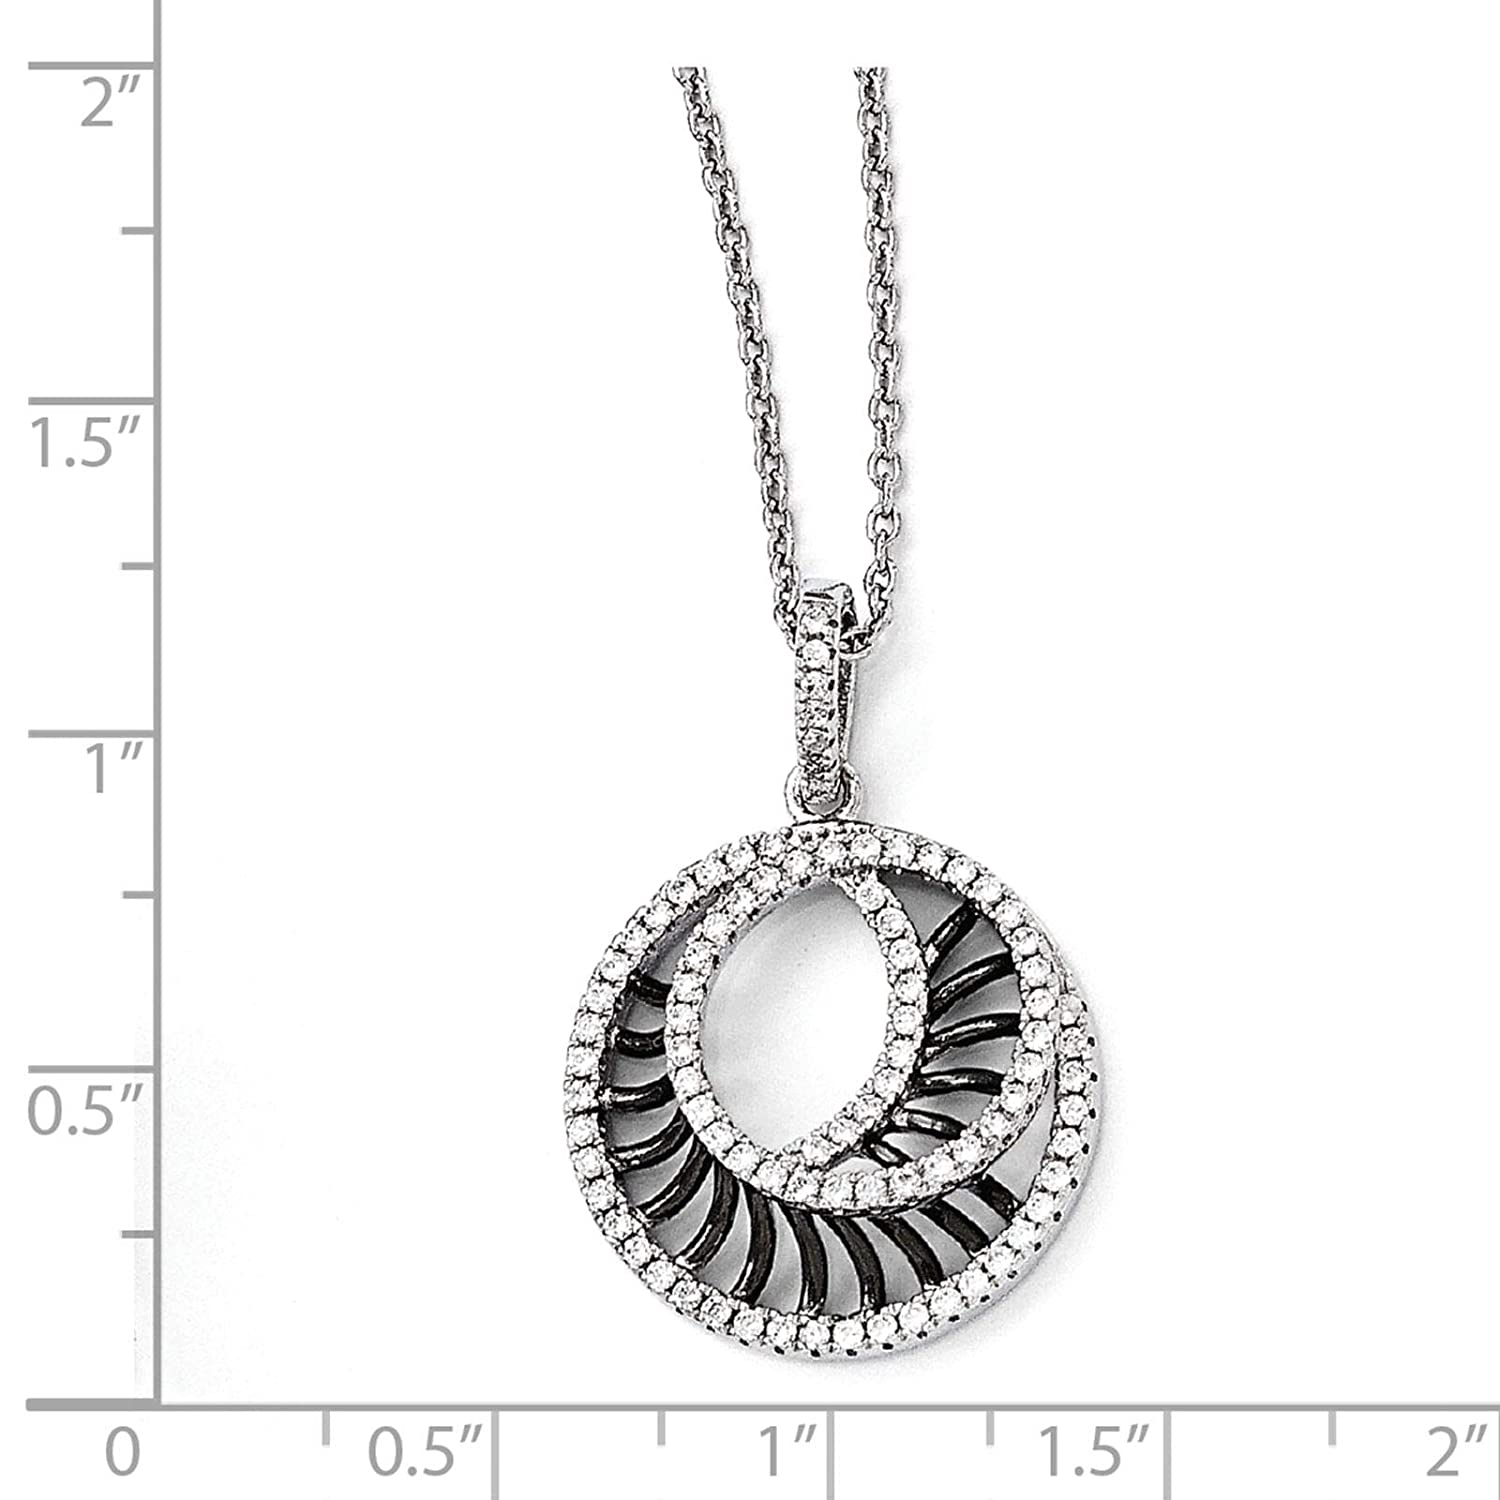 2 Extender Brilliant Embers Sterling Silver Rhodium-plated Polished CZ Circle Pendant Necklace 18